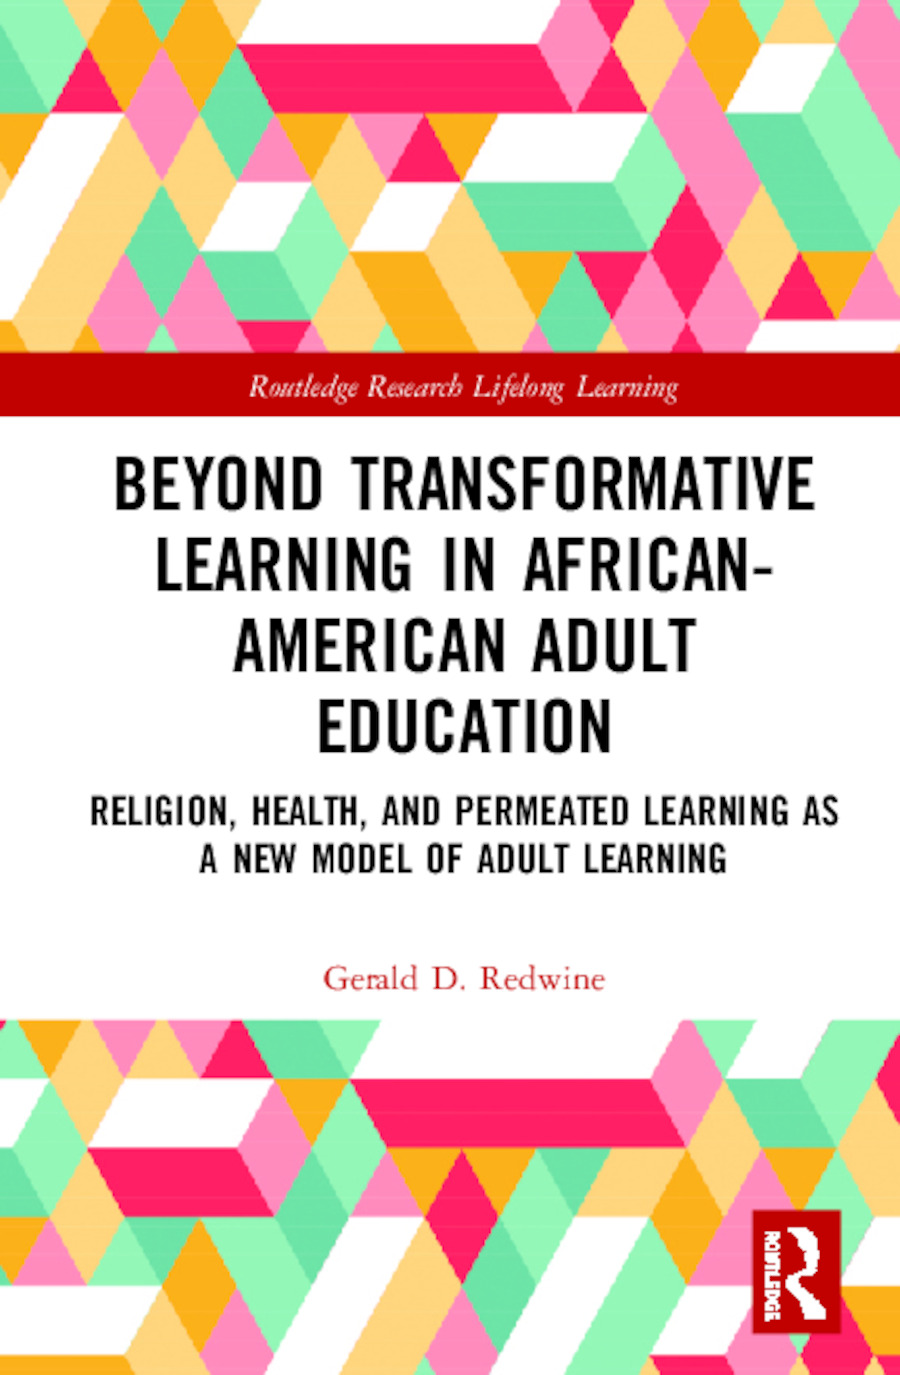 Beyond Transformative Learning in African-American Adult Education: Religion, Health, and Permeated Learning as a New Model of Adult Learning book cover